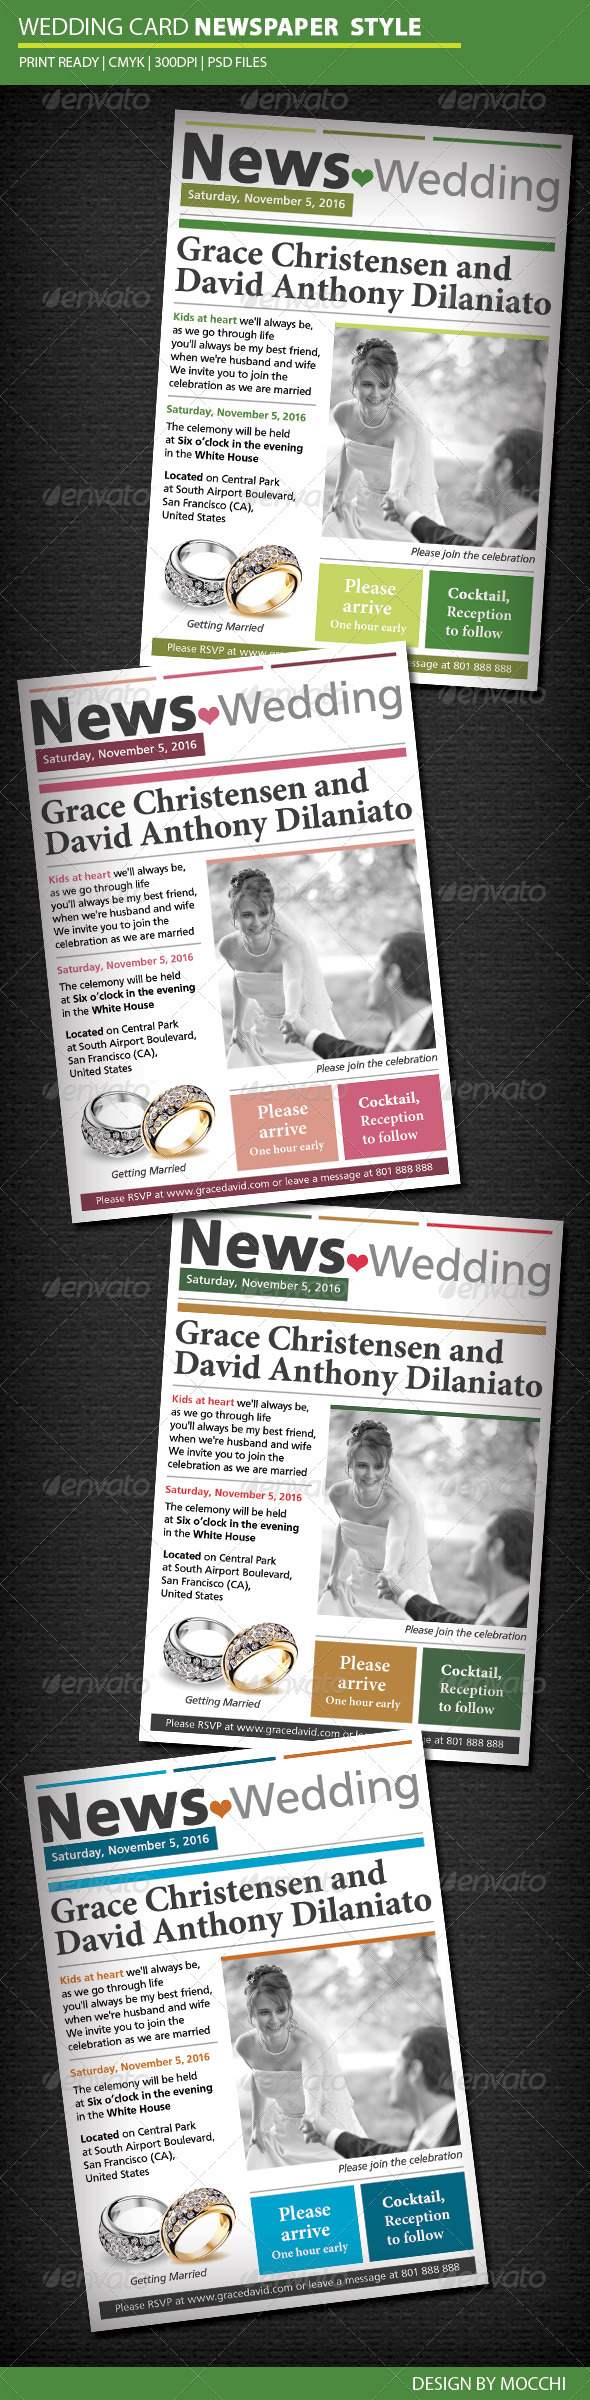 Wedding Card Newspaper Style - Weddings Cards & Invites